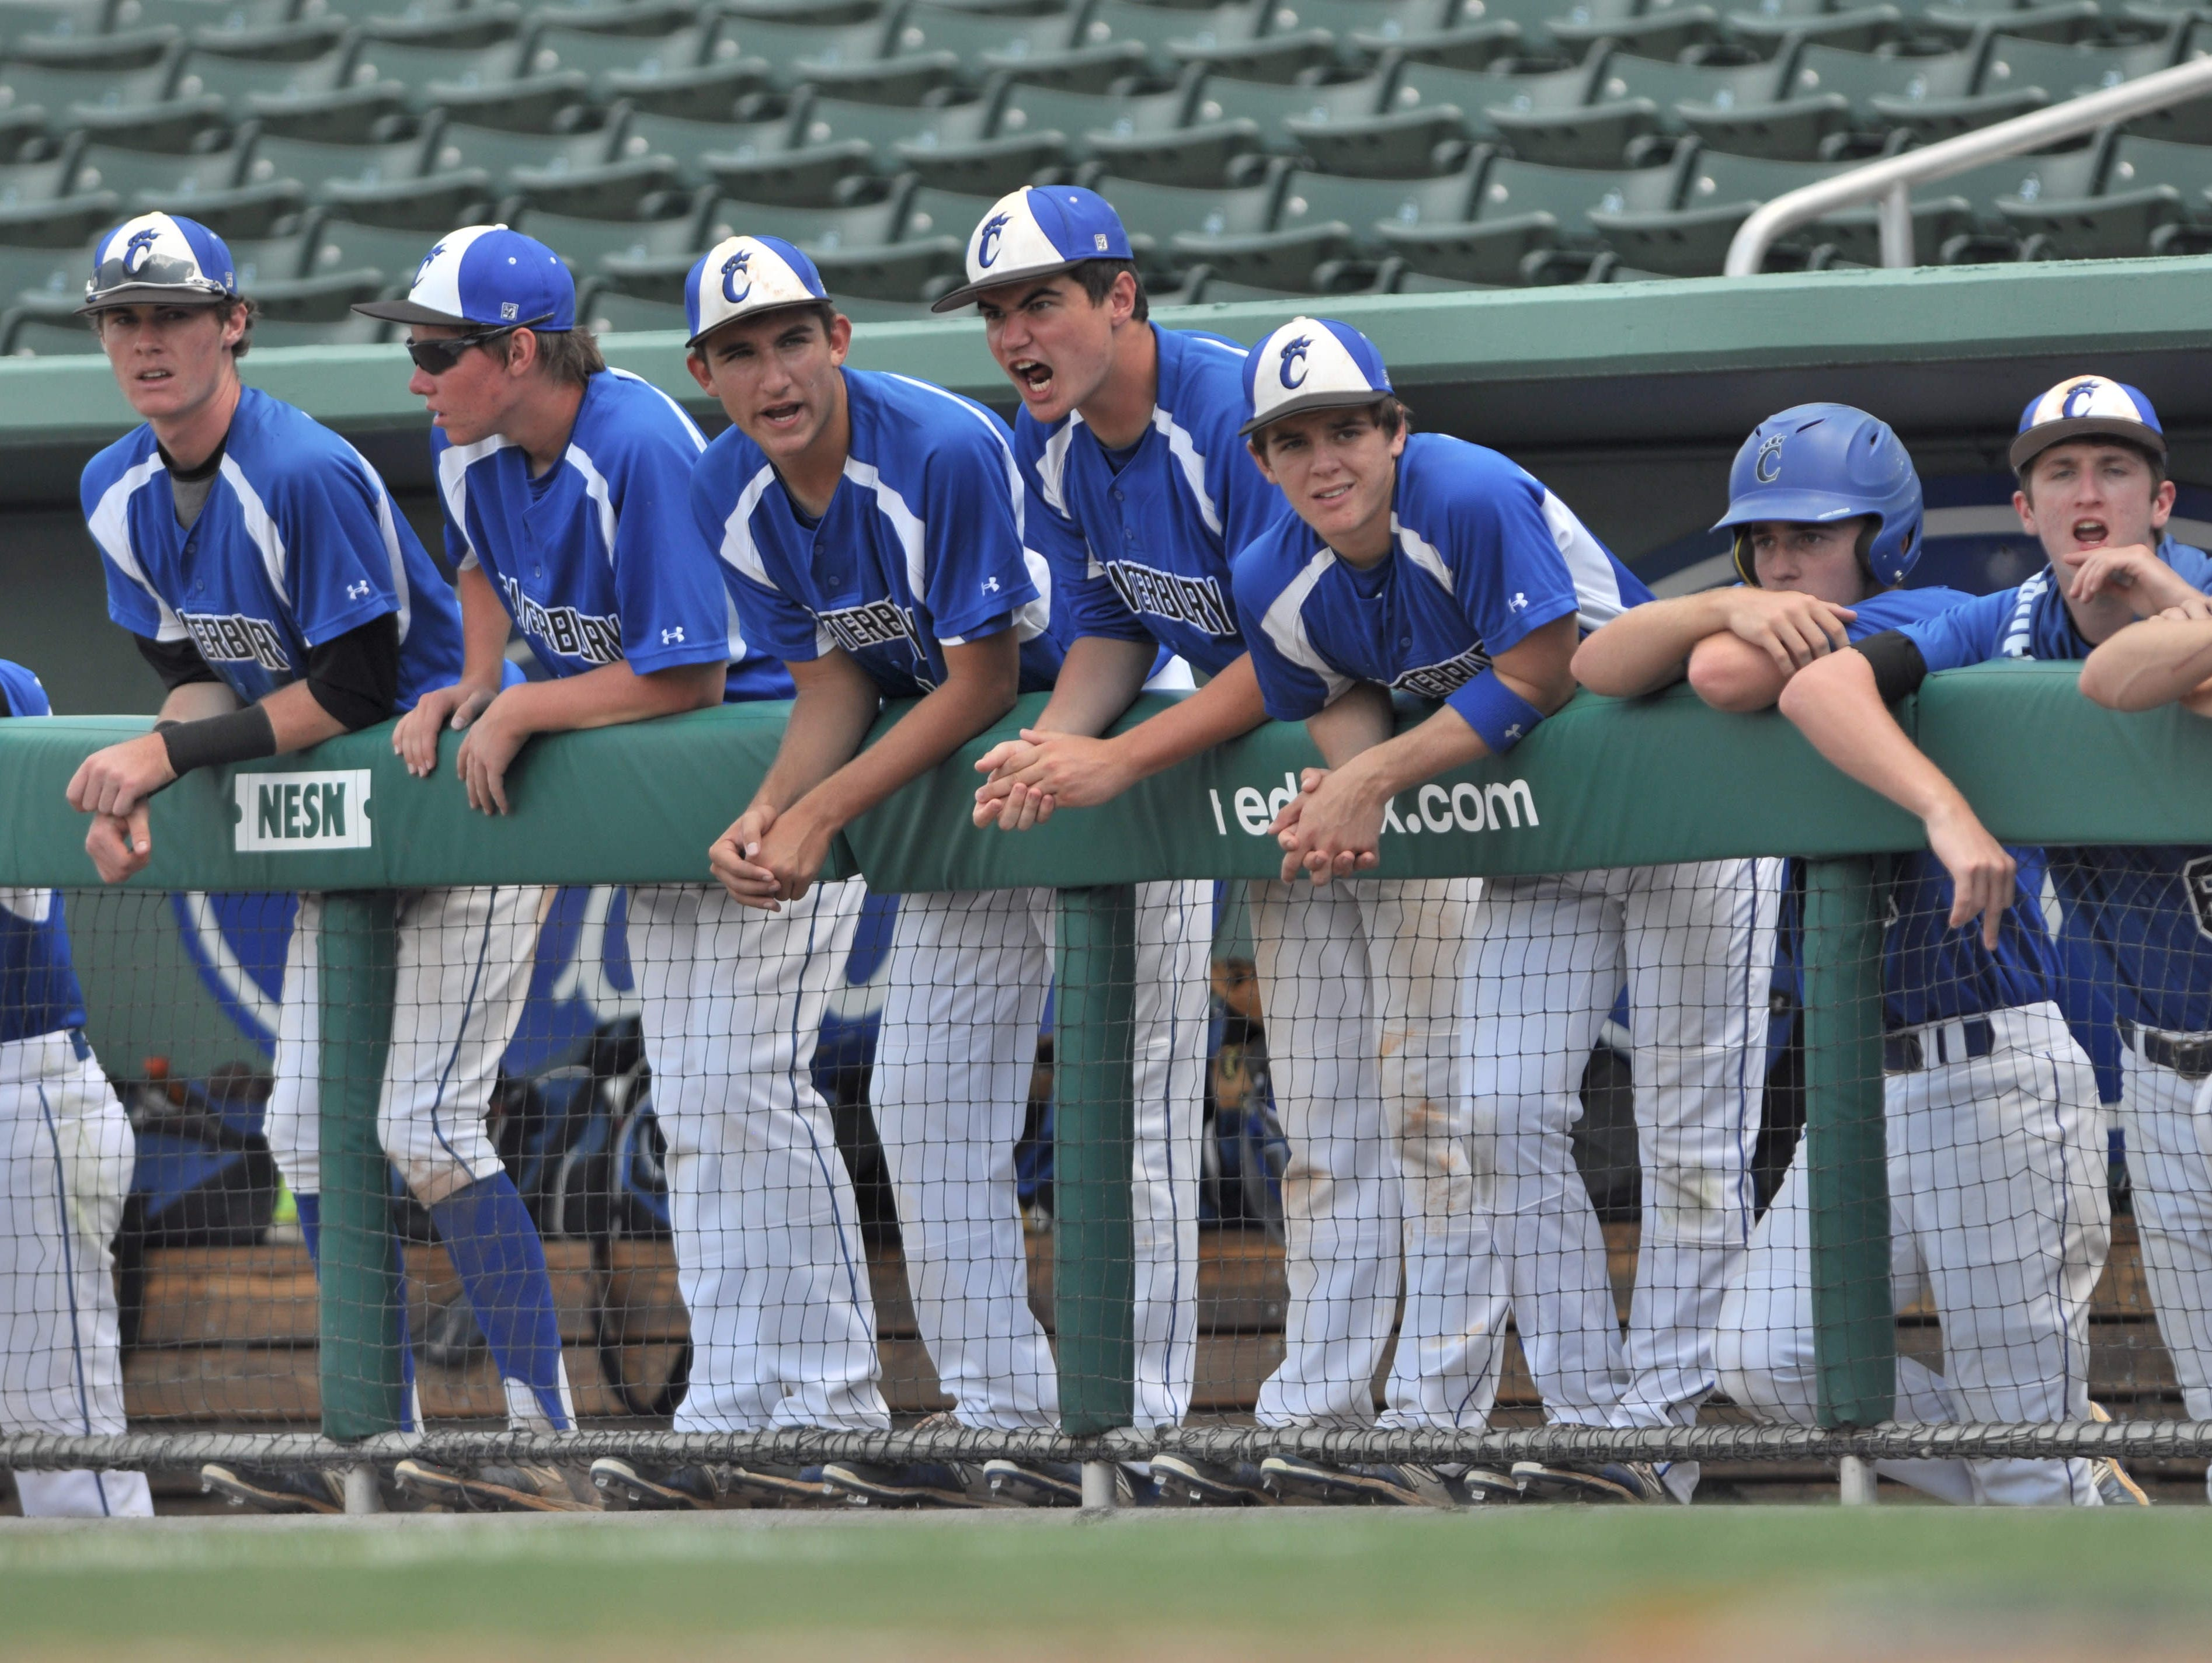 The Canterbury School baseball team will look to make a return to the state Final Four after falling in the state semifinals last season.